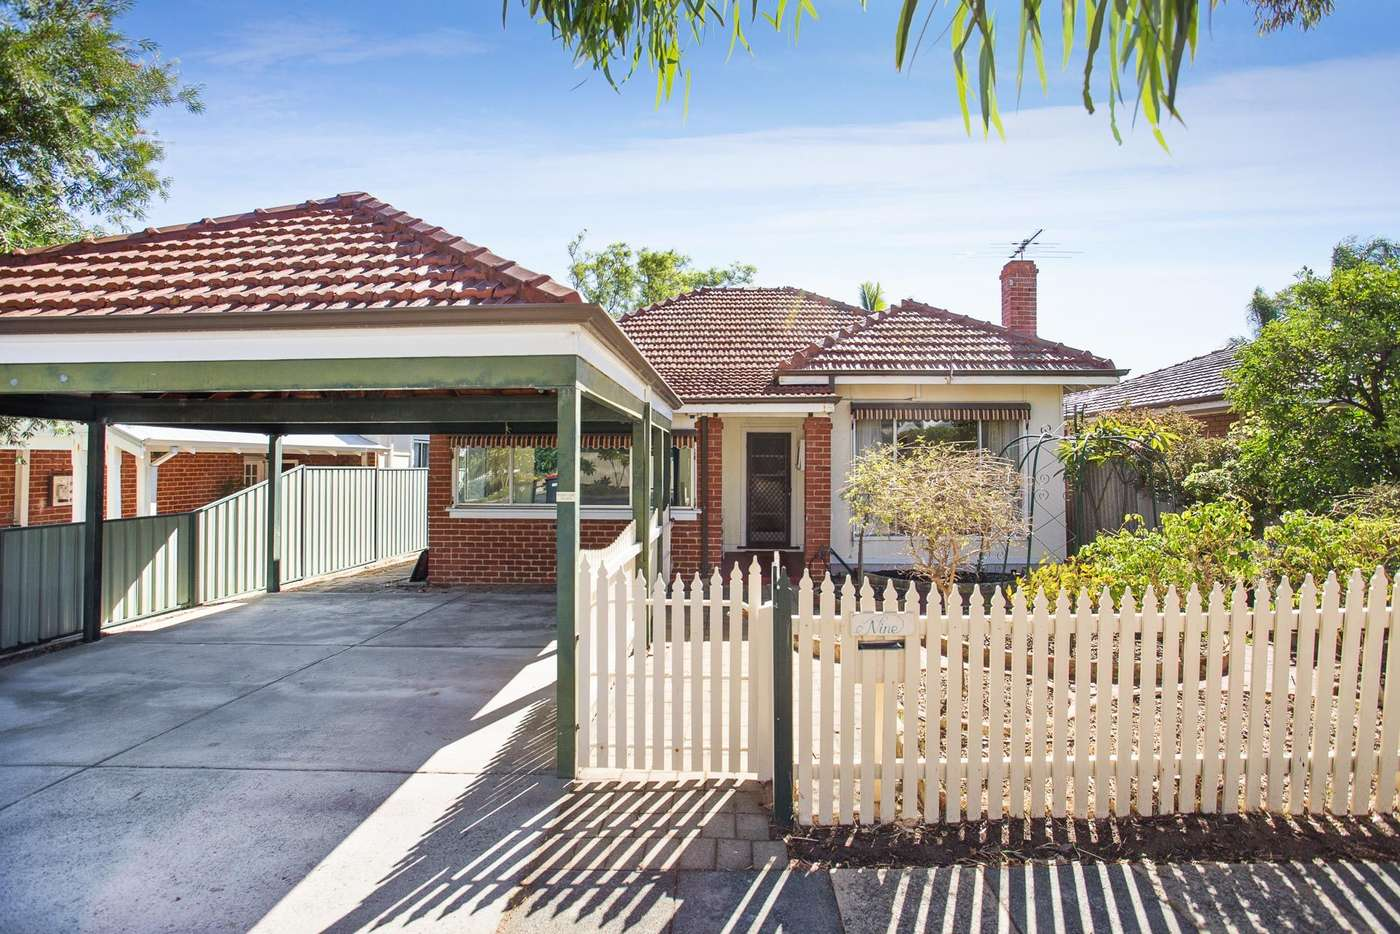 Main view of Homely house listing, 9 Hilda Street, Shenton Park WA 6008